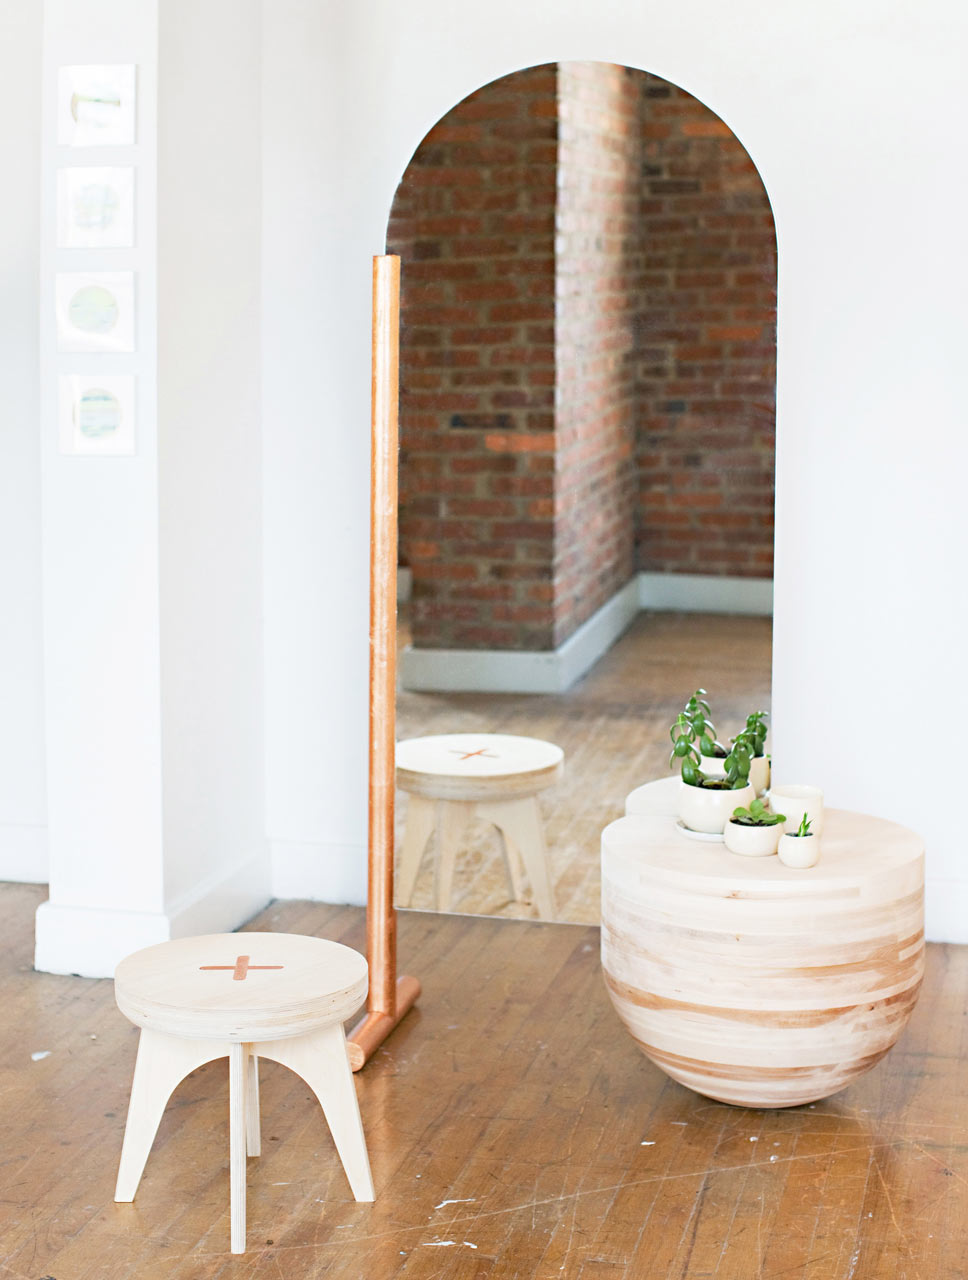 The Wabi-Sabi Mirror&Table by Eny Lee Parker